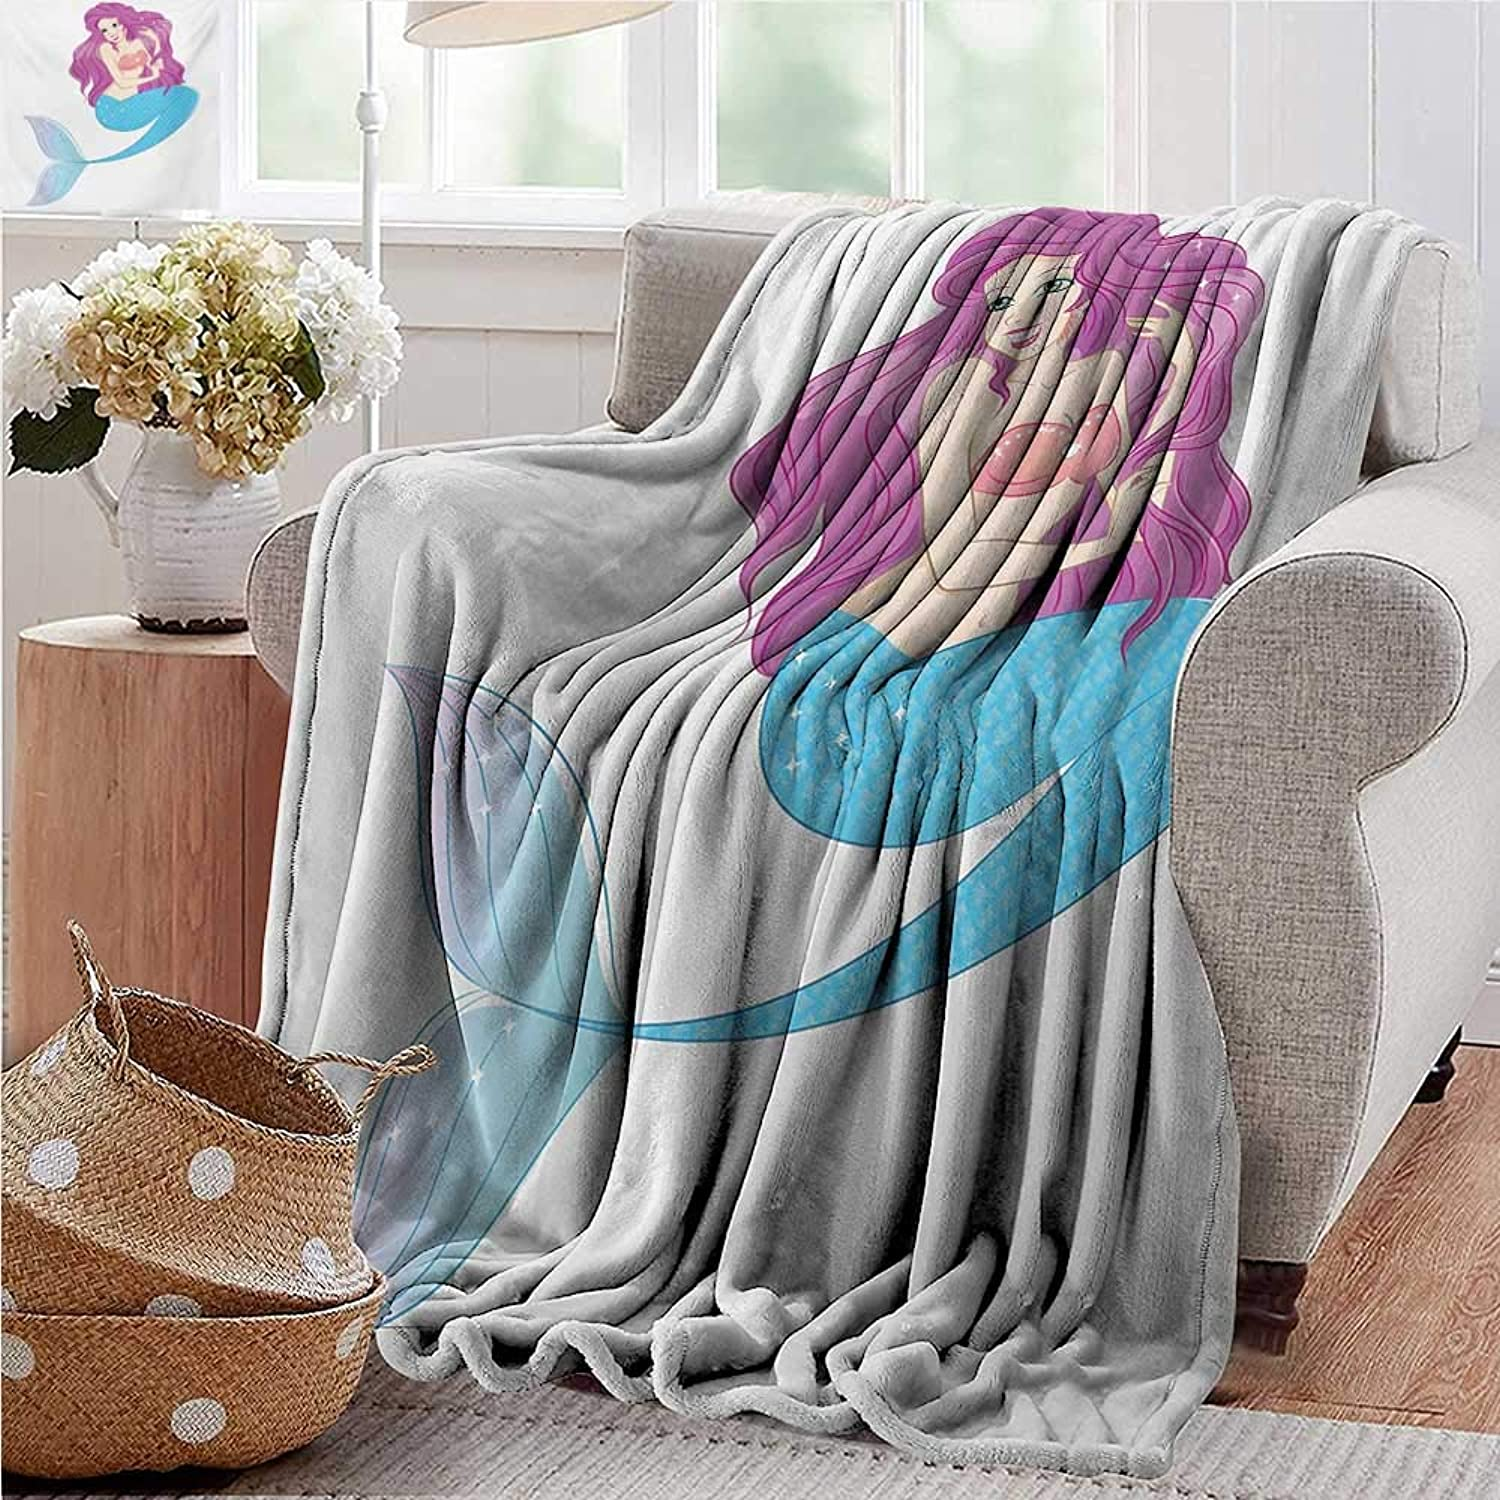 PearlRolan Velvet Touch Ultra Plush,Mermaid,Cute Mermaid Playing with Her Hair Folk Mythical Character Princess,Turquoise Fuscia White,300GSM,Super Soft and Warm,Durable Throw Blanket 50 x60